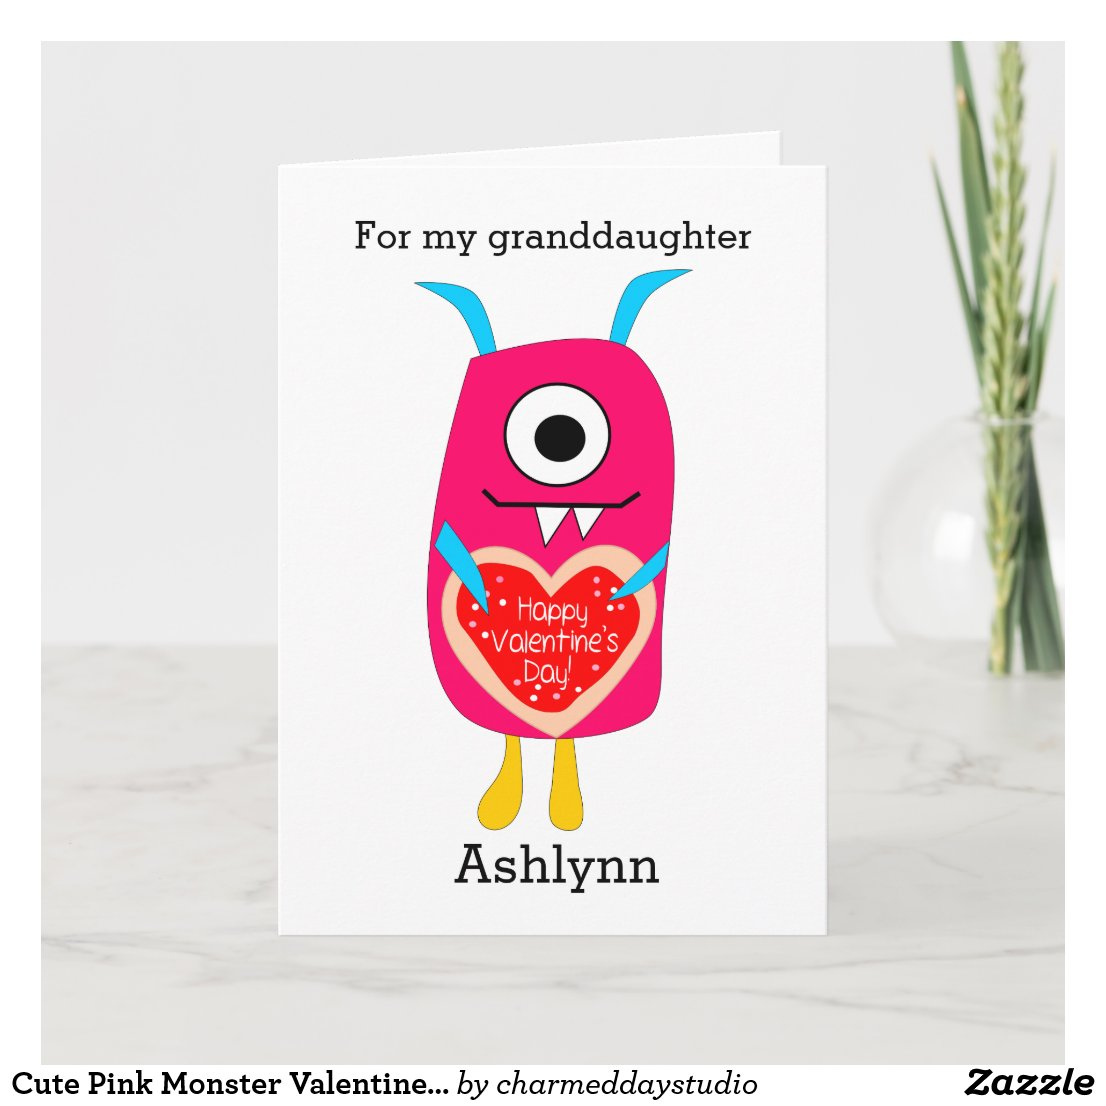 Cute Pink Monster Valentine Granddaughter Holiday Card